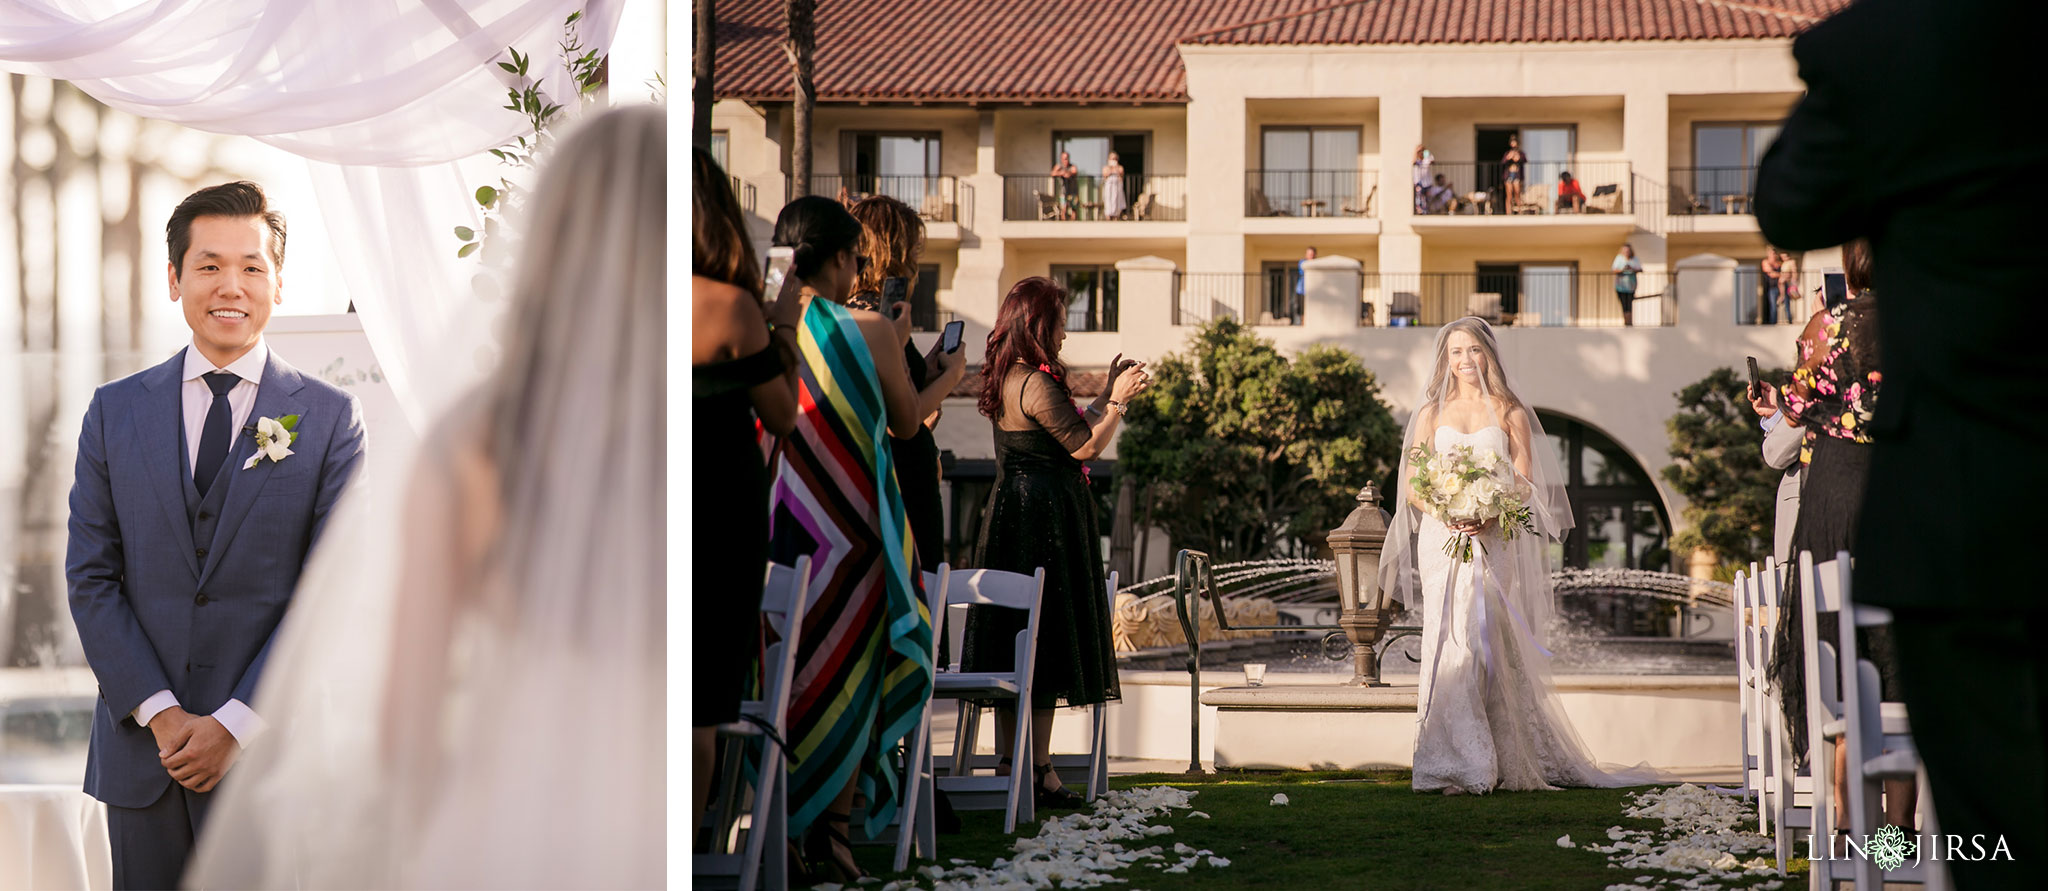 24 hyatt regency huntington beach wedding photography